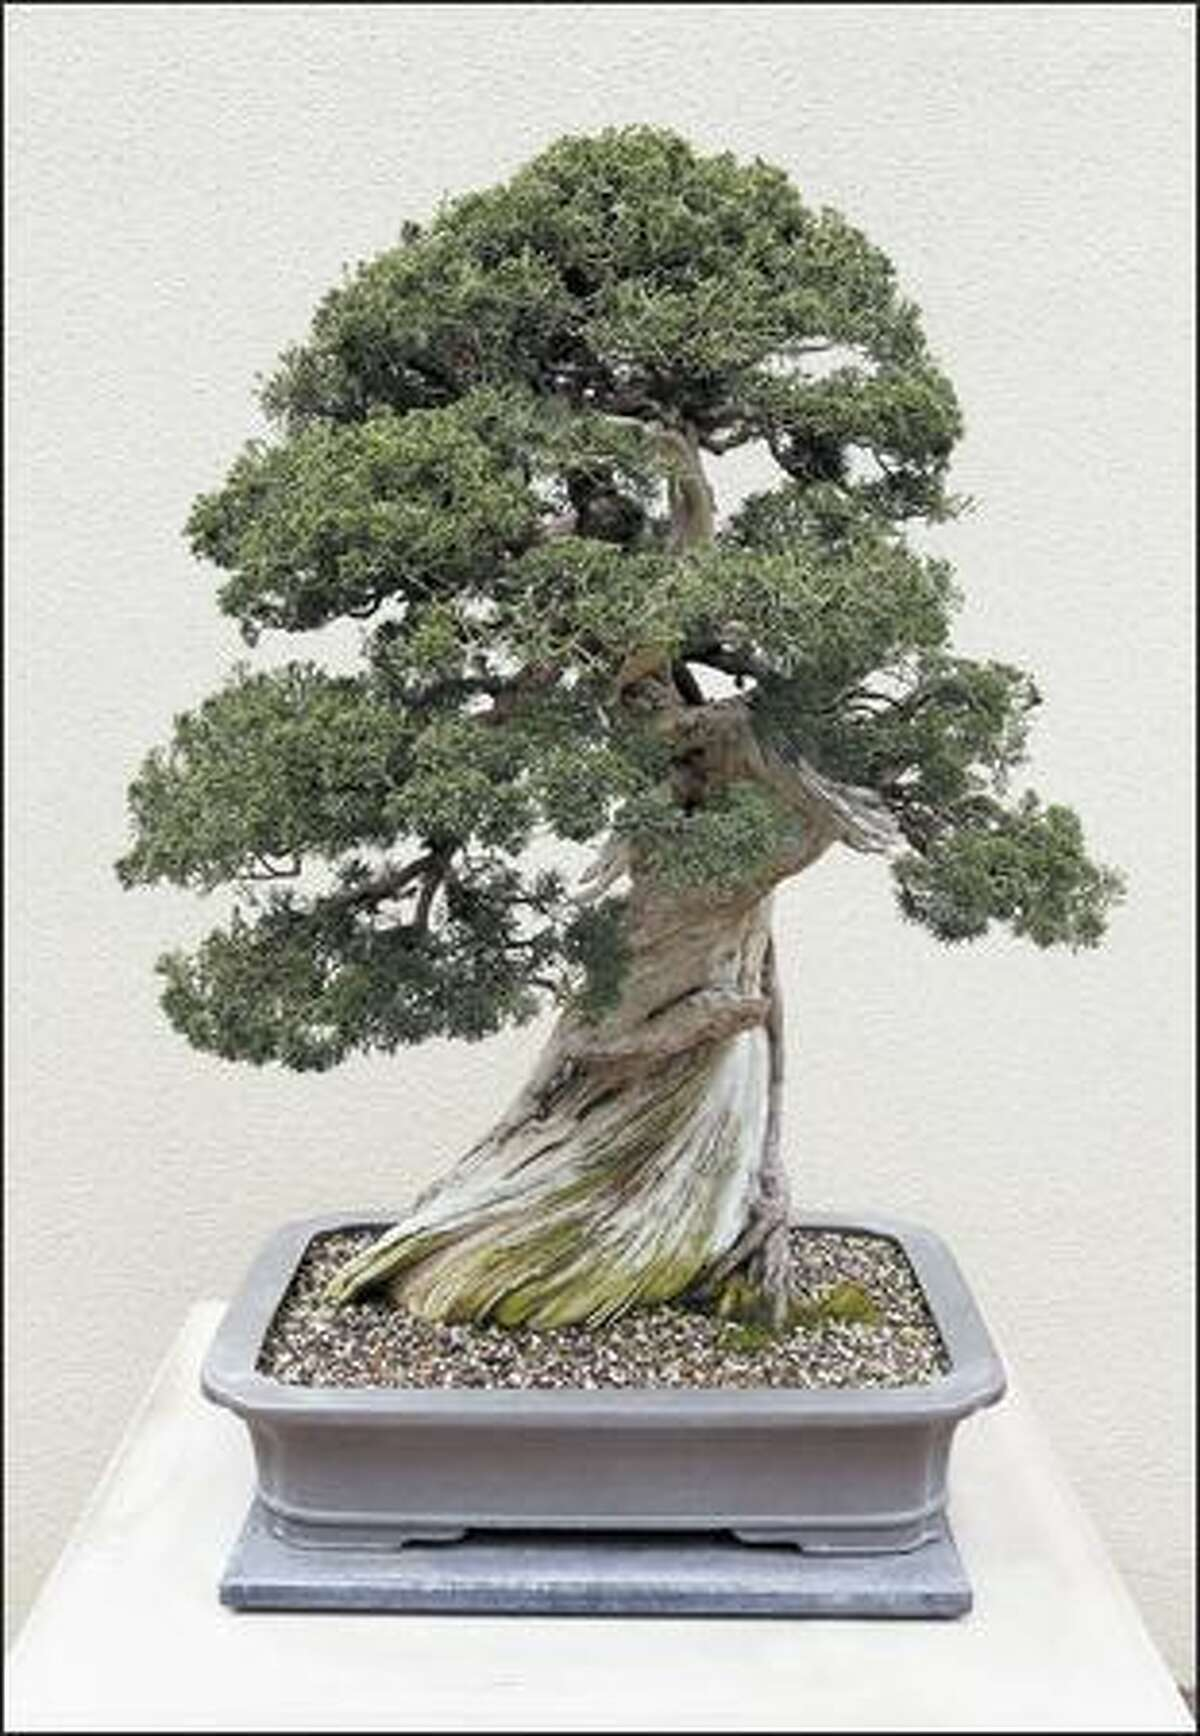 This Chinese juniper on Sierra juniper is part of the Pacific Rim Bonsai Collection in Federal Way. This bonsai's date of origin is 1970. The artist is Kenneth Sugimoto.